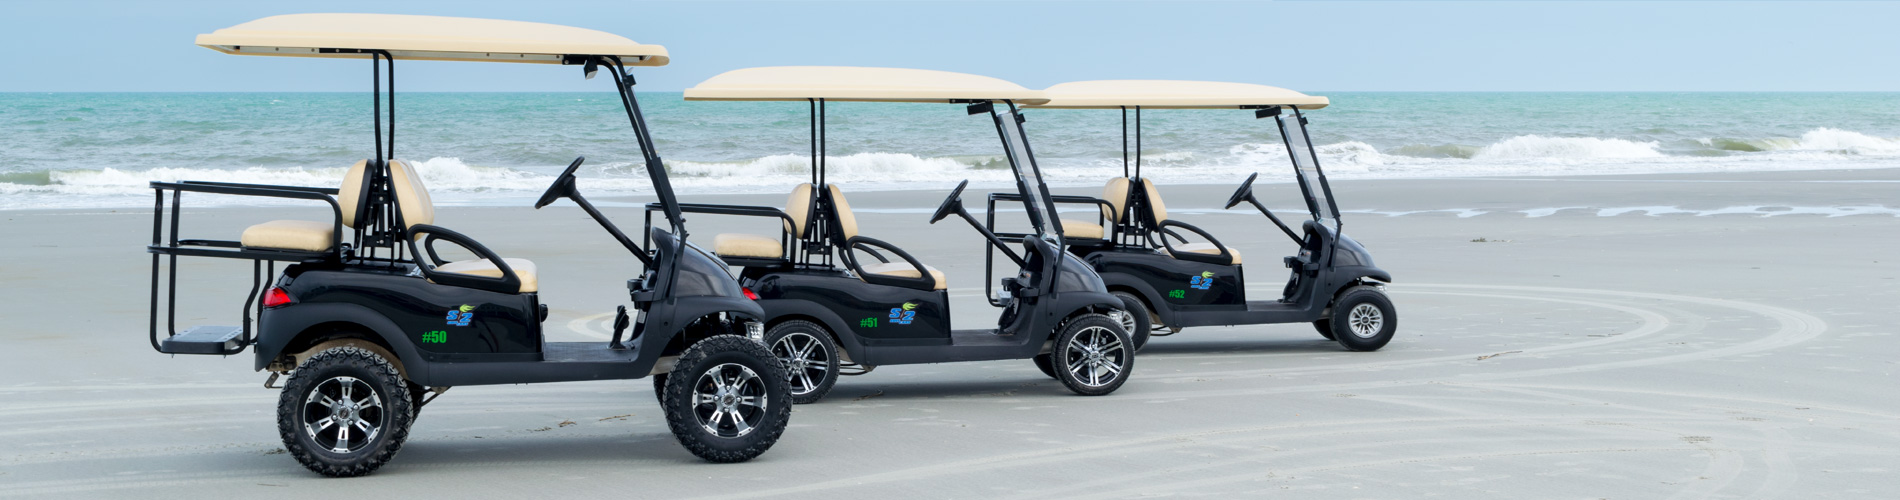 Home S2 Golf Cars Local Golf Cart Dealer In Myrtle Beach And